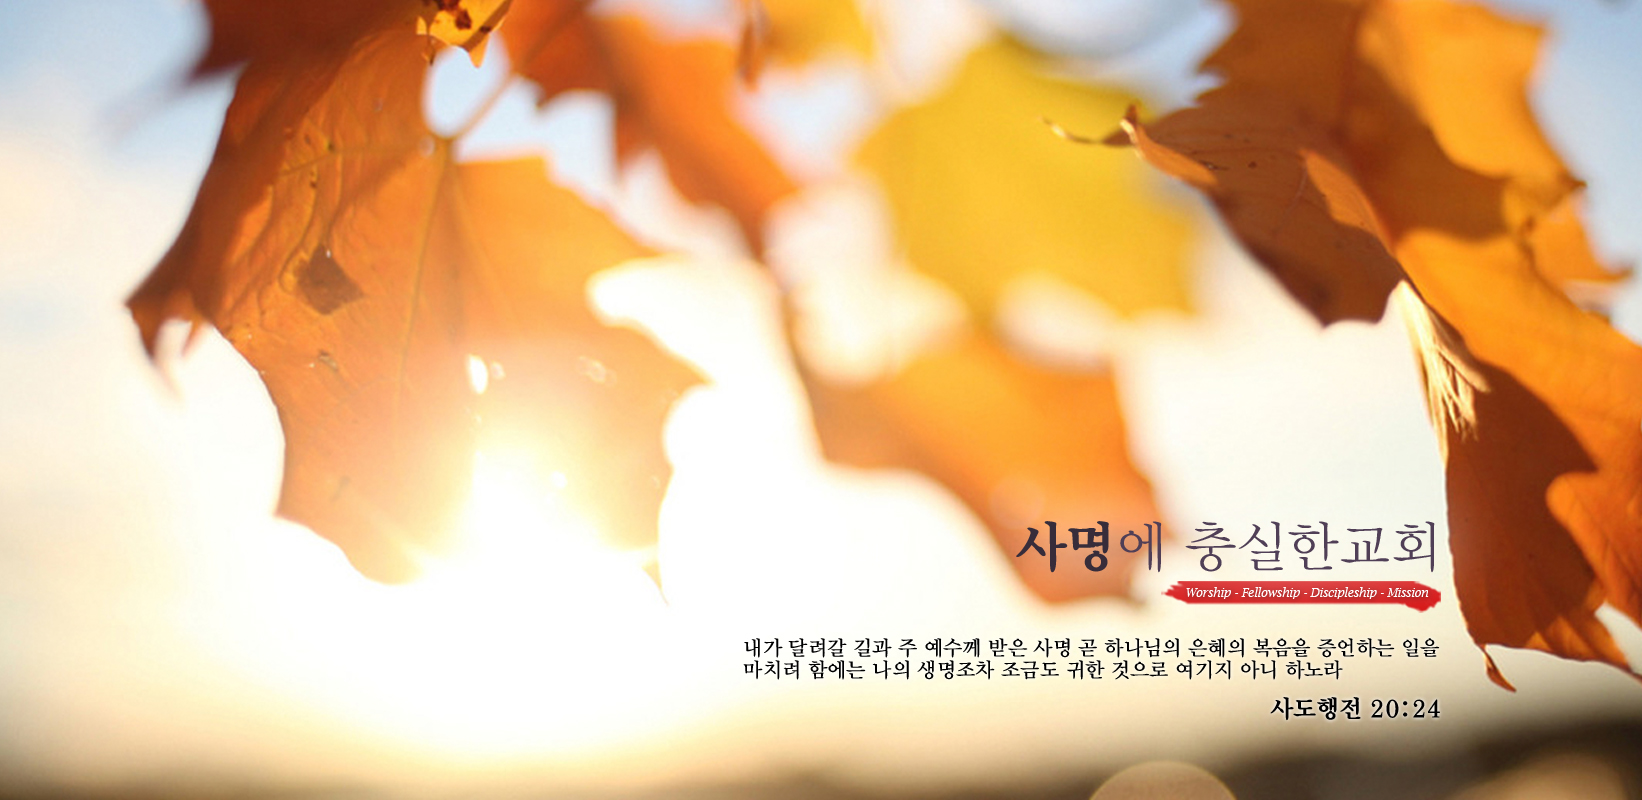 homepage-banner1